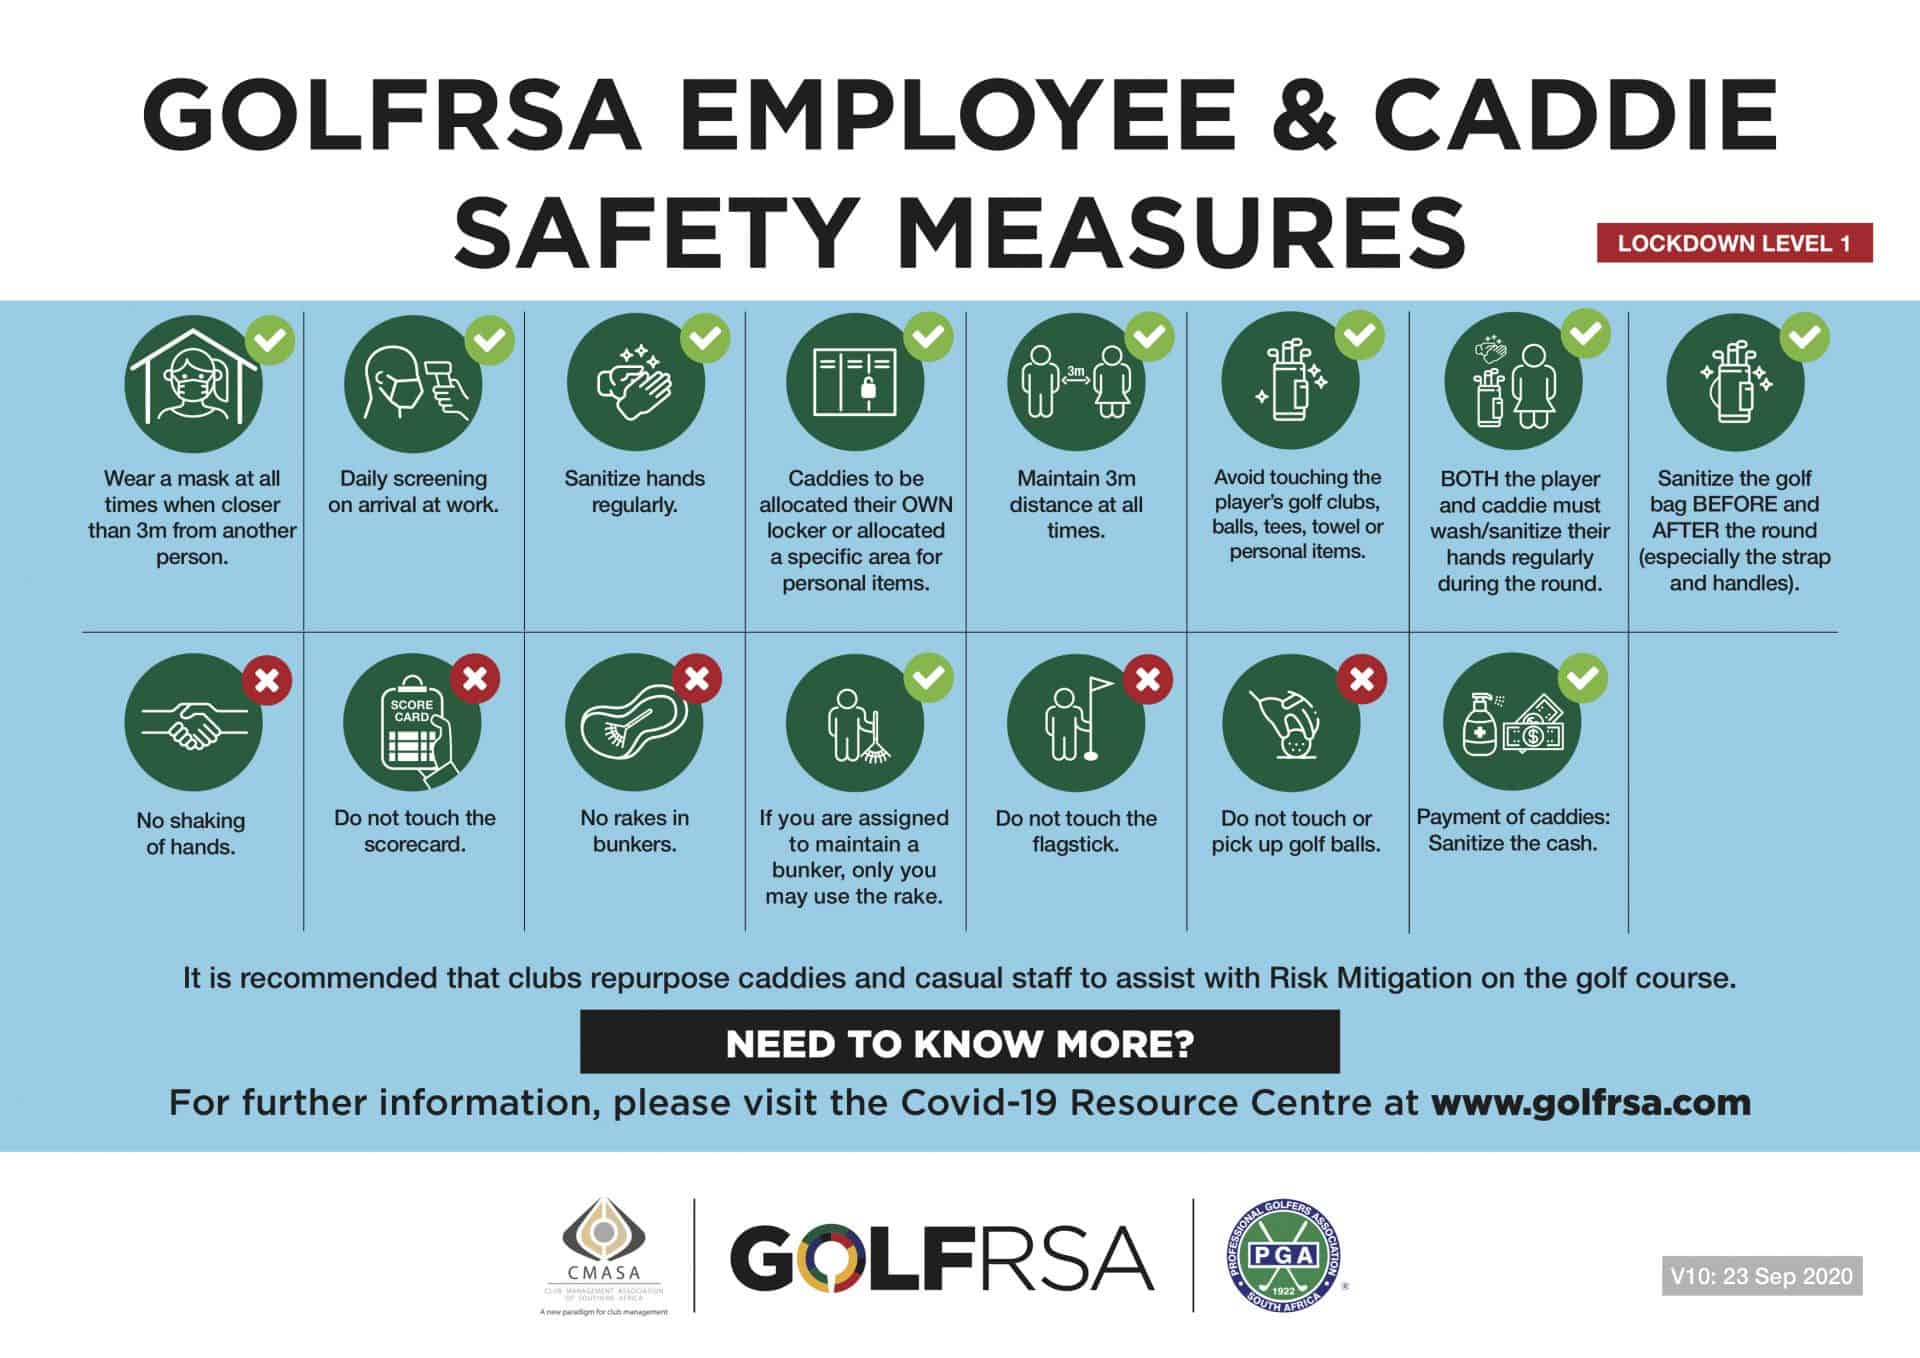 ENG GolfRSA caddie and employee safety measures V10 - 1